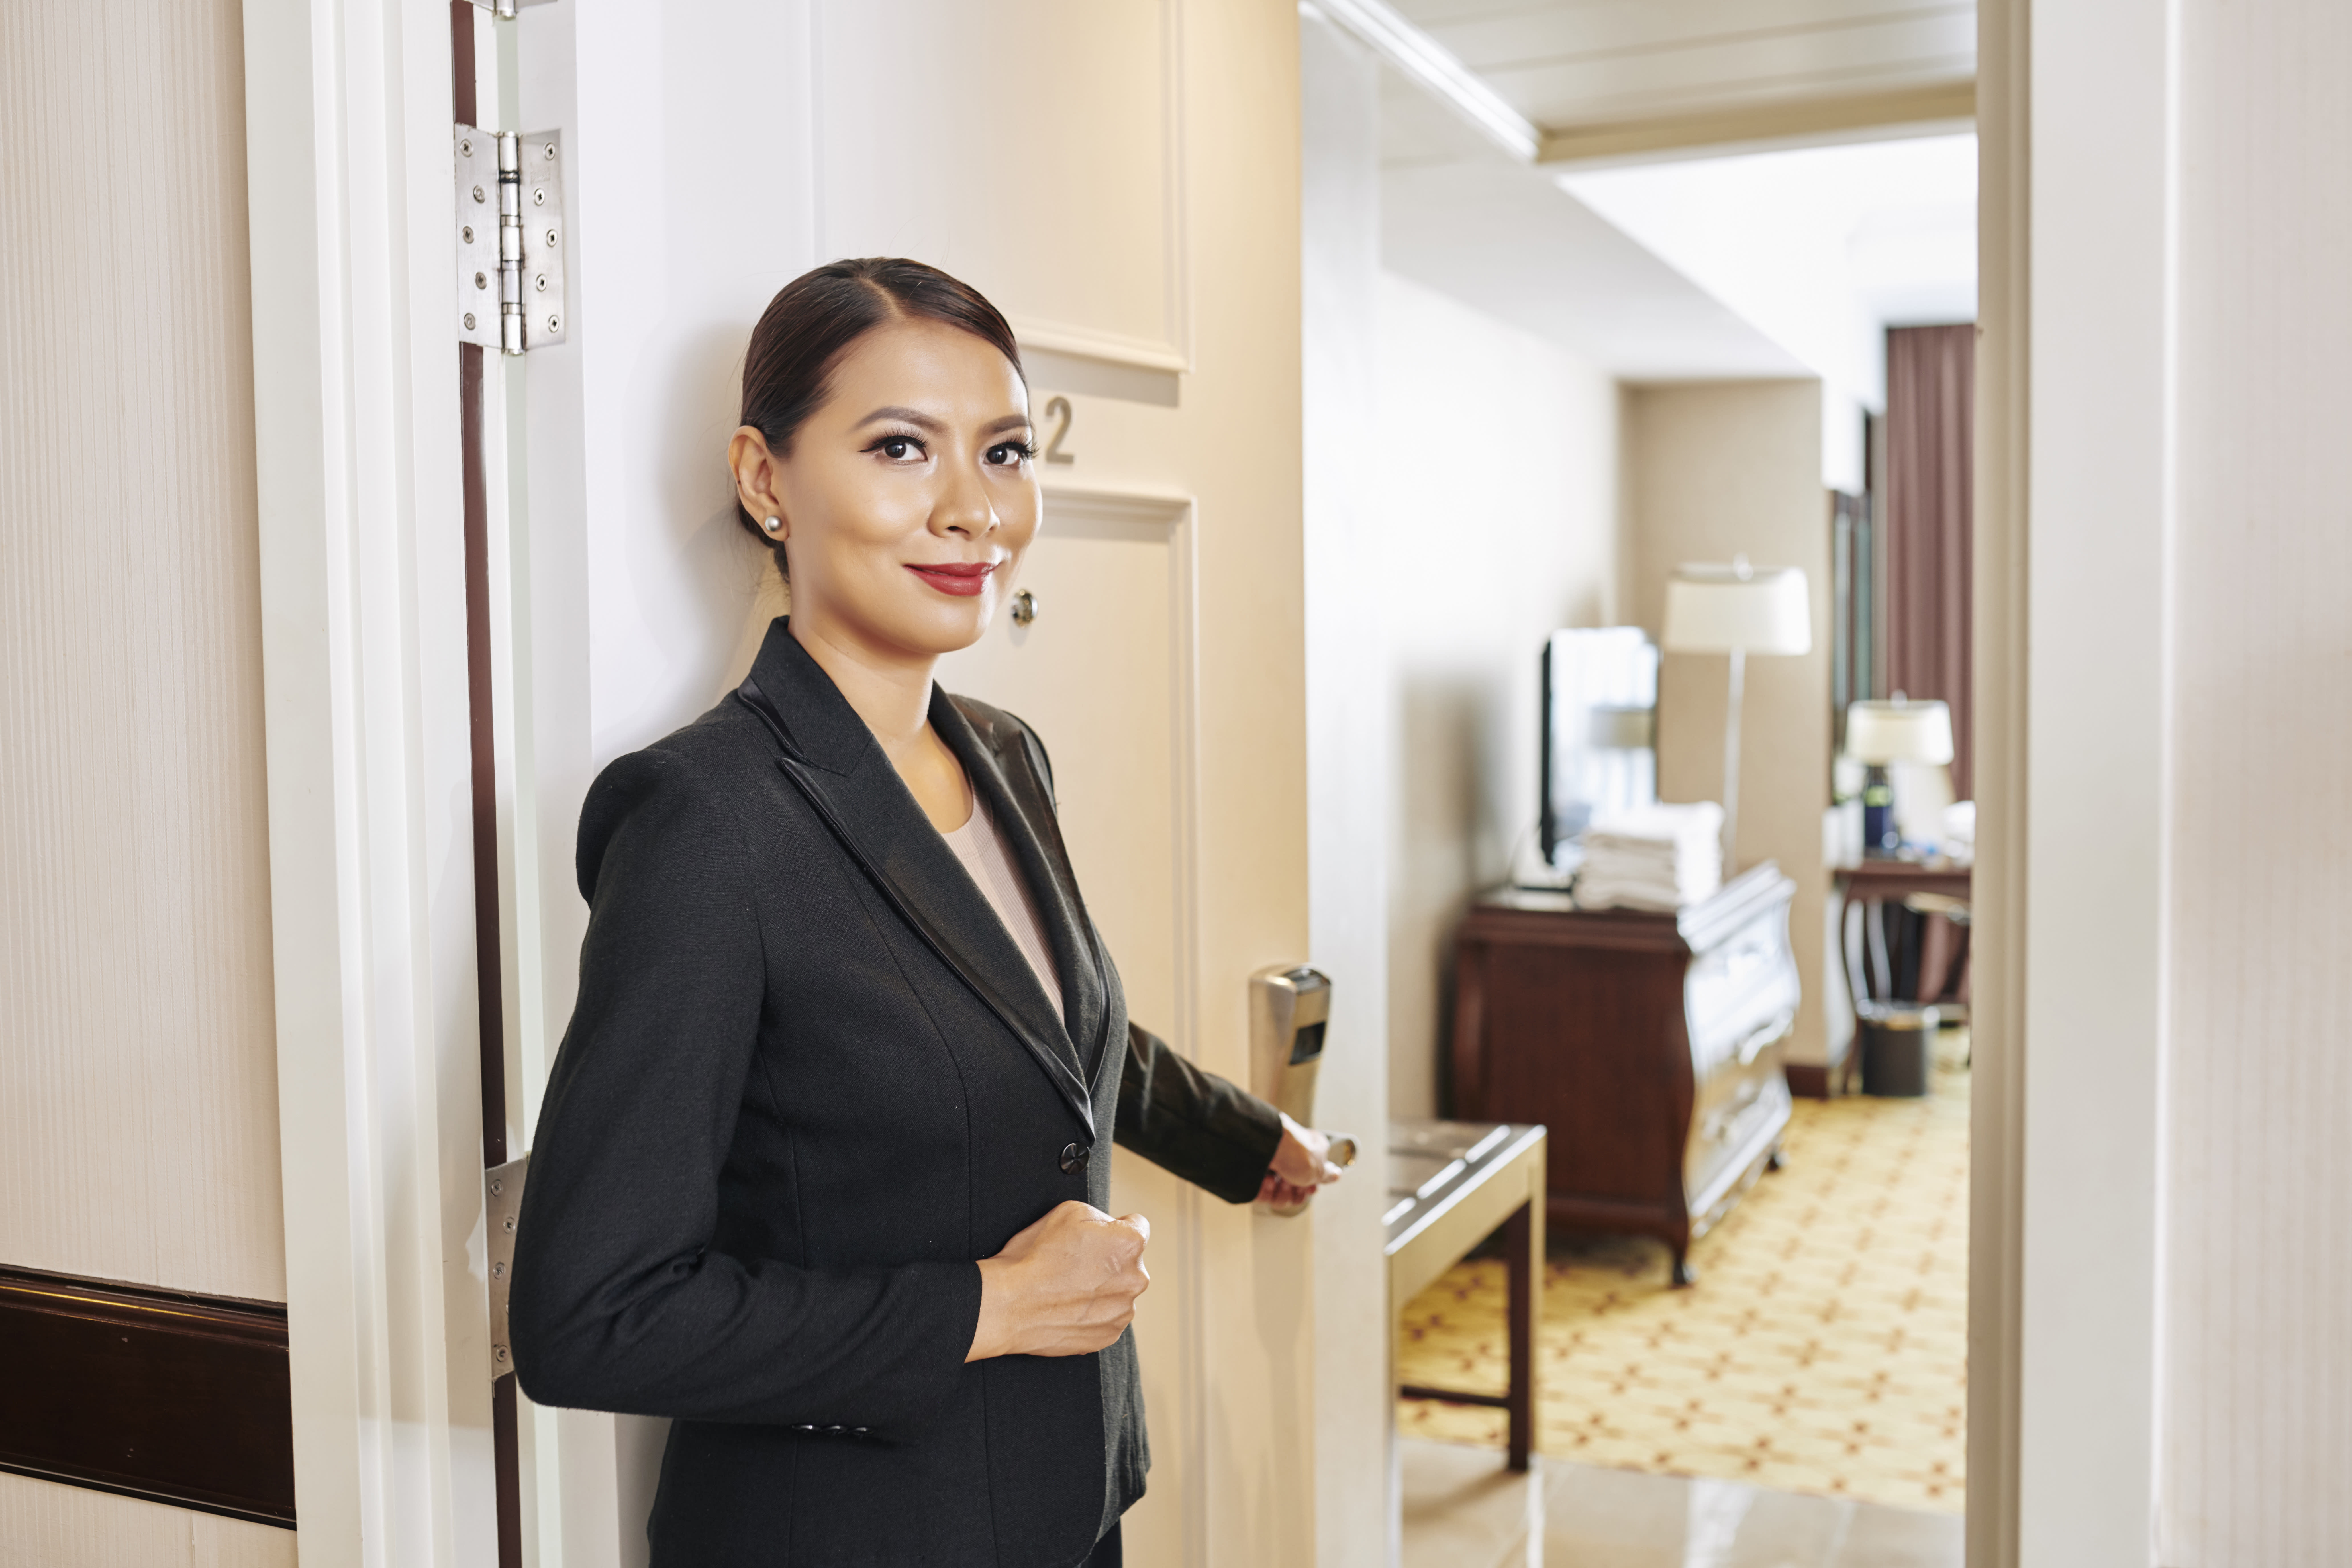 How the Hospitality Industry Can Meet New expectations of Travelers